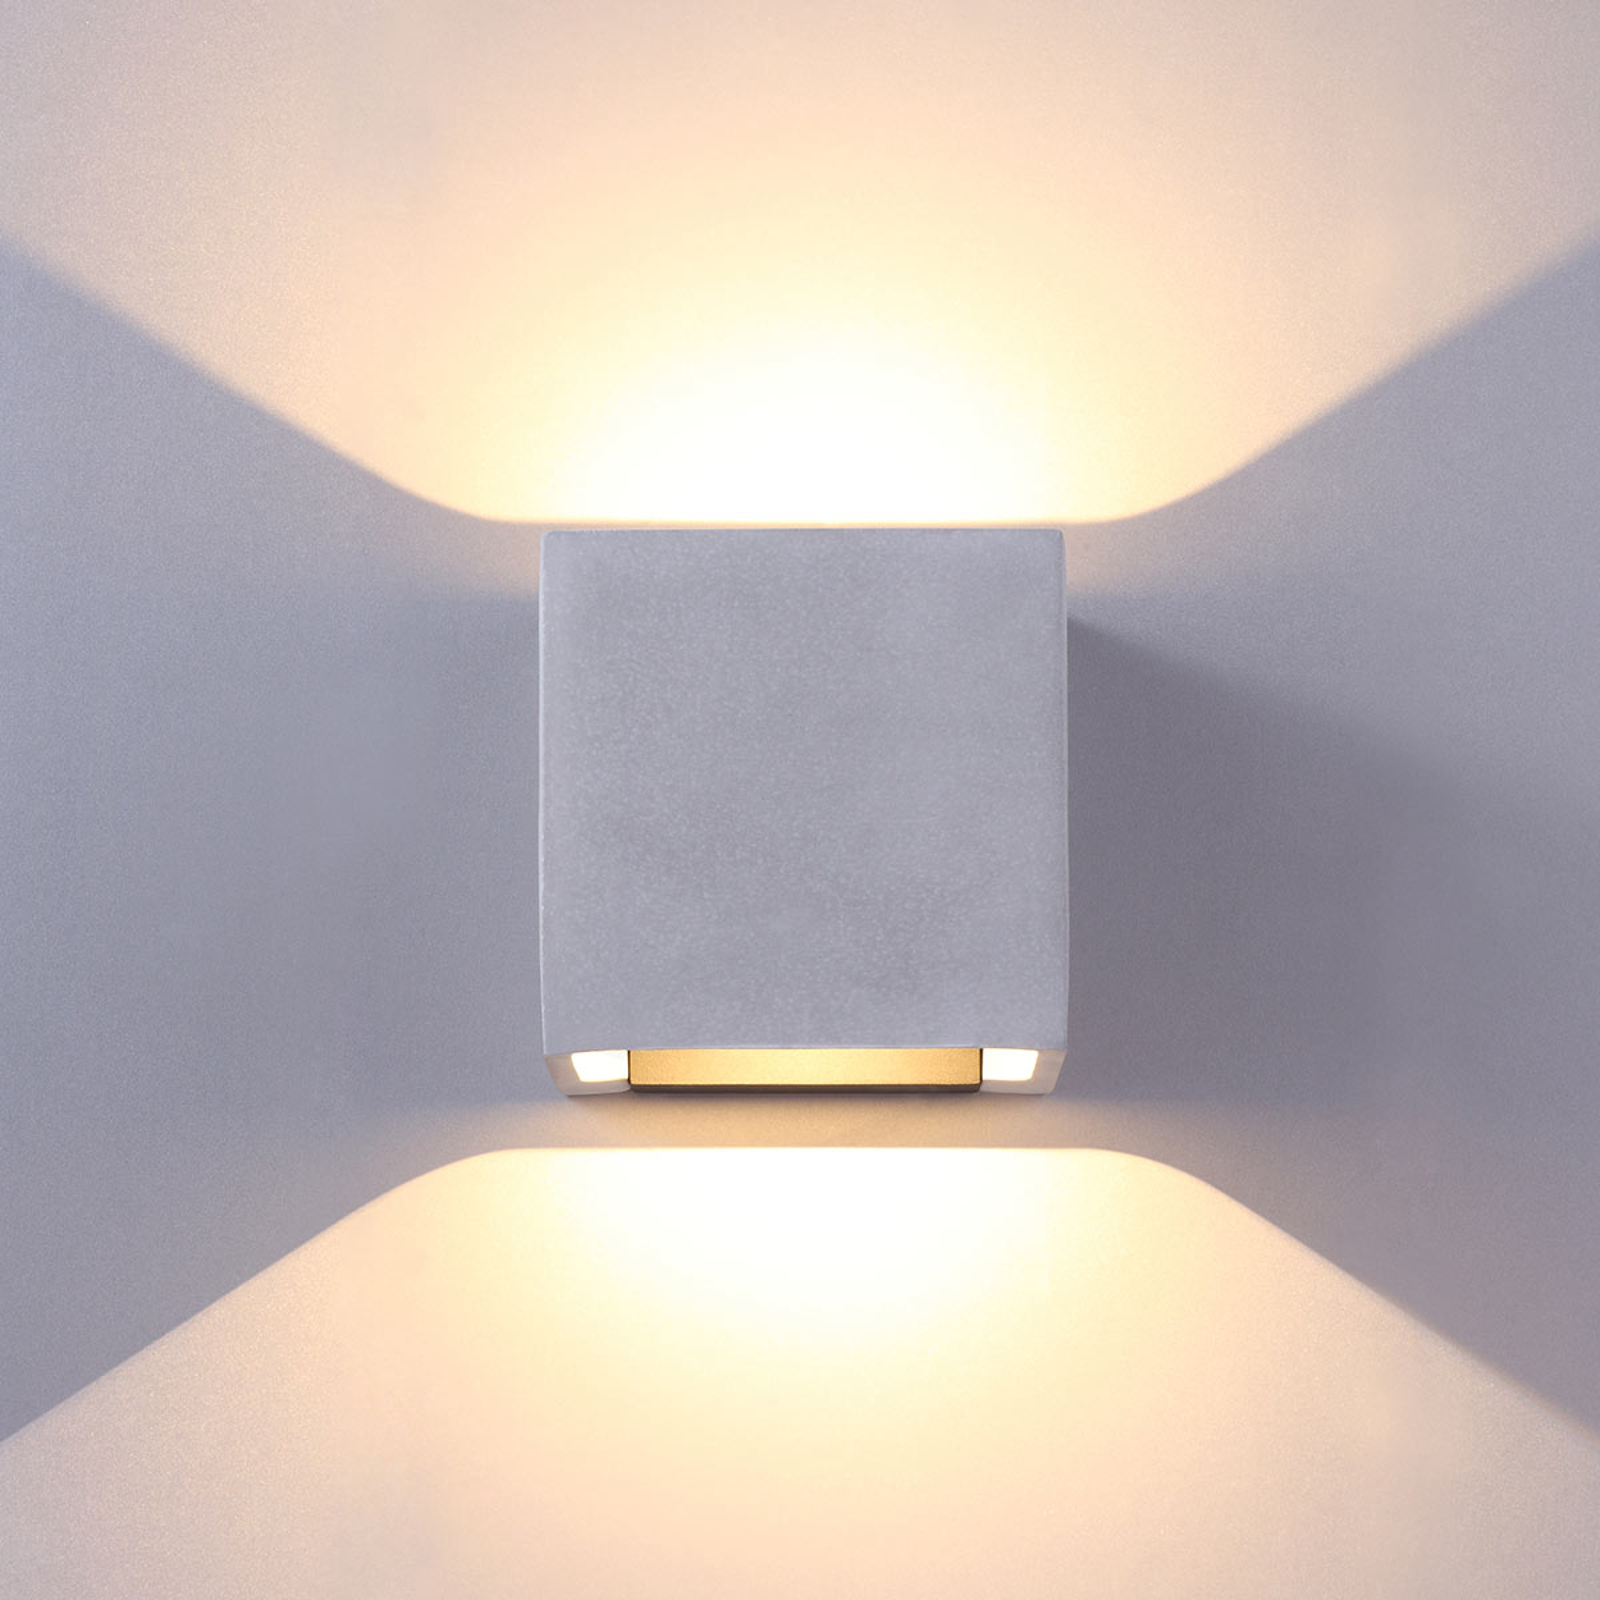 Concrete grey LED outdoor wall lamp Riak_9619102_1